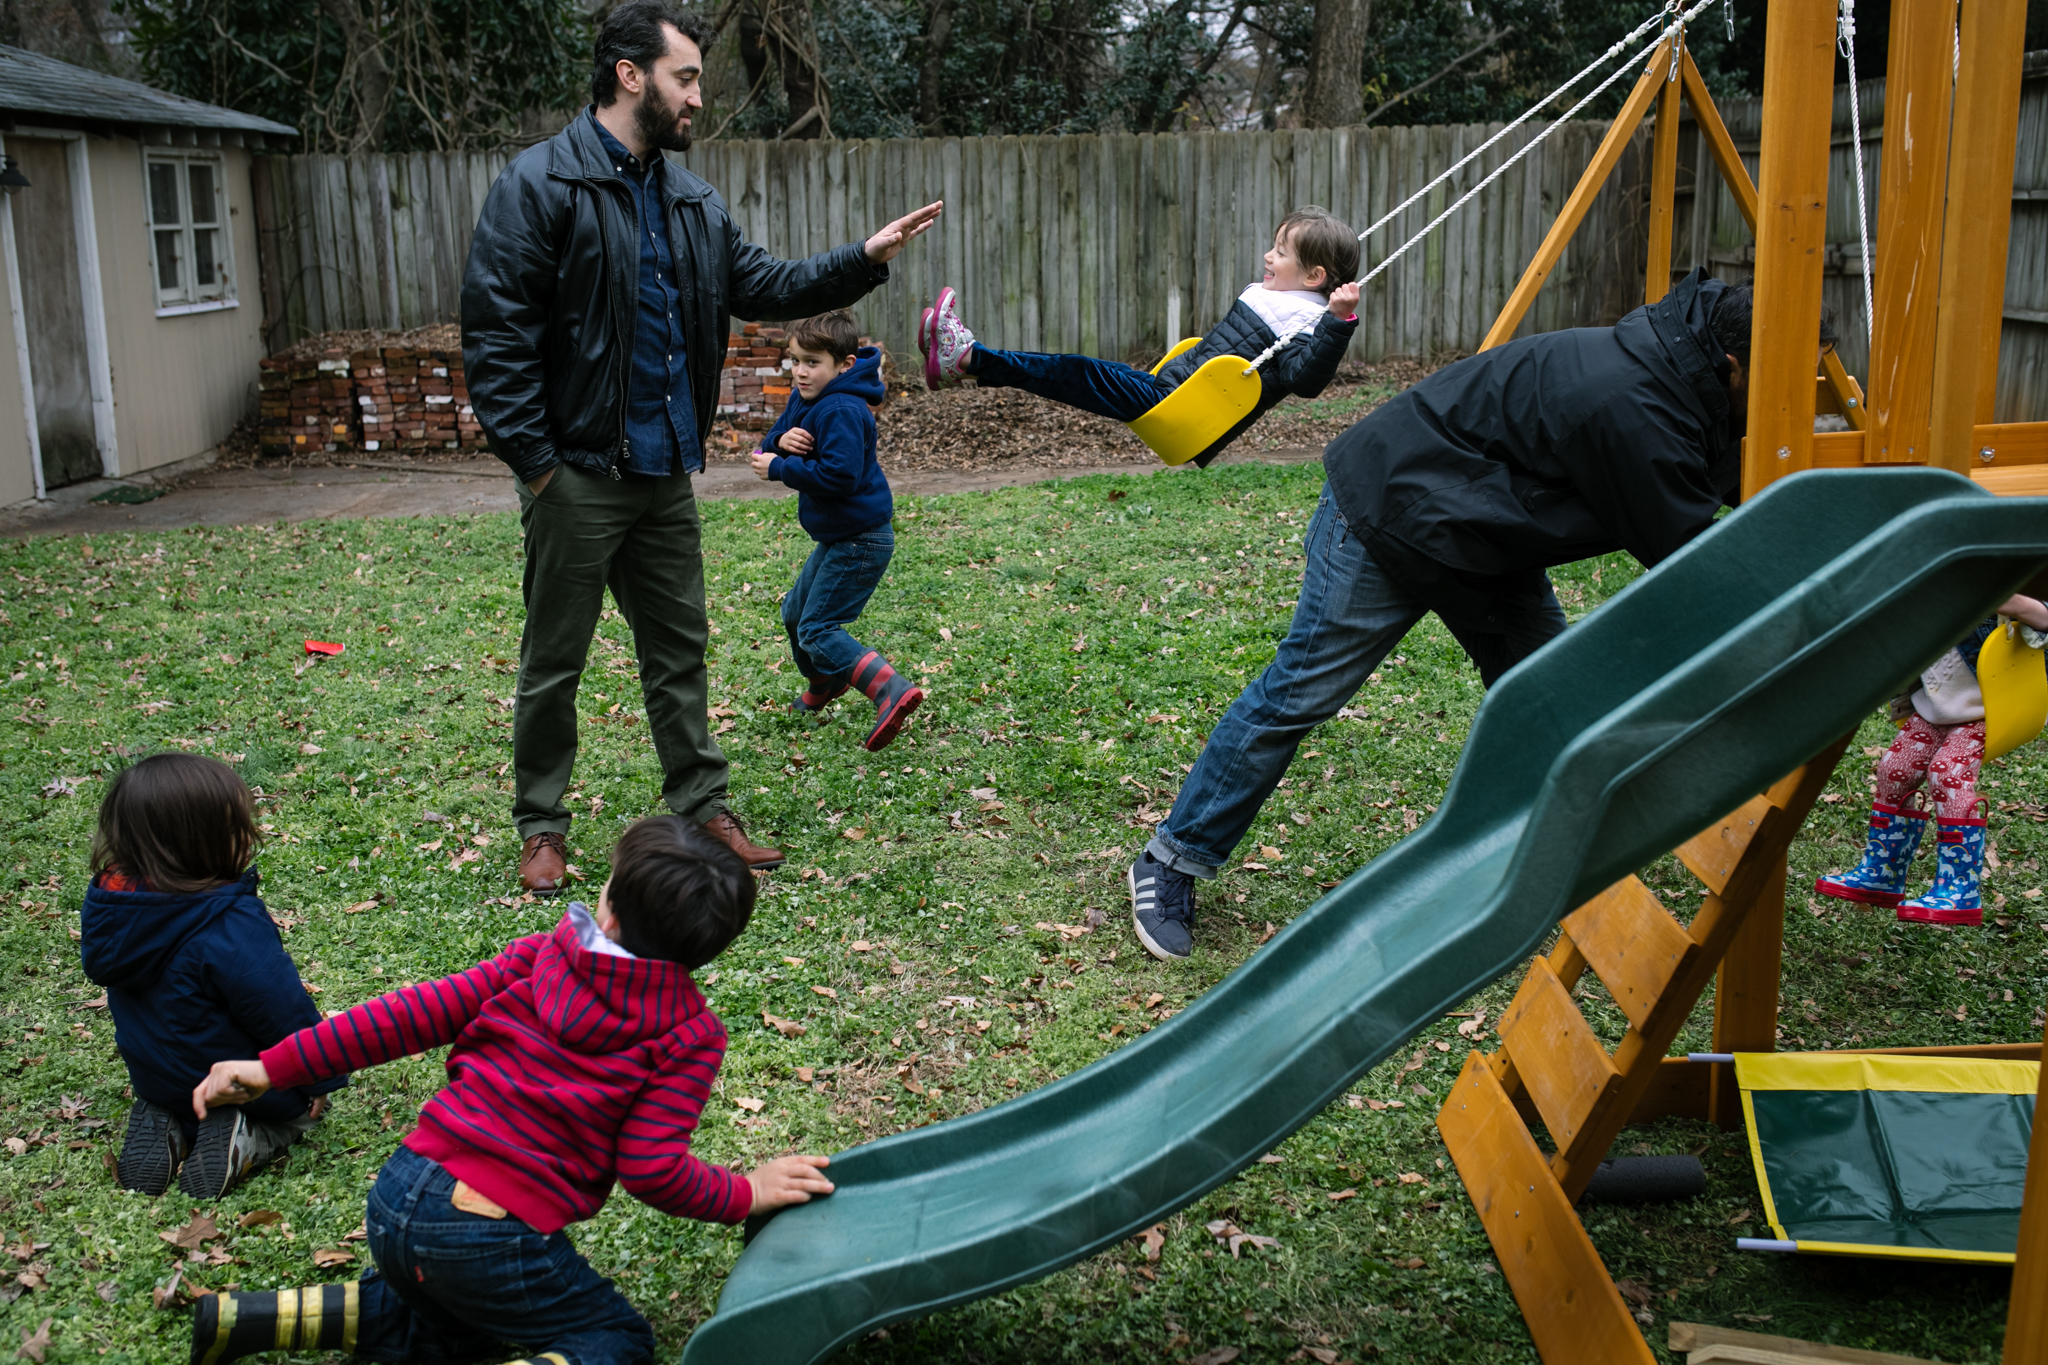 Several kids play on and around a playset while two dads push kids on swing